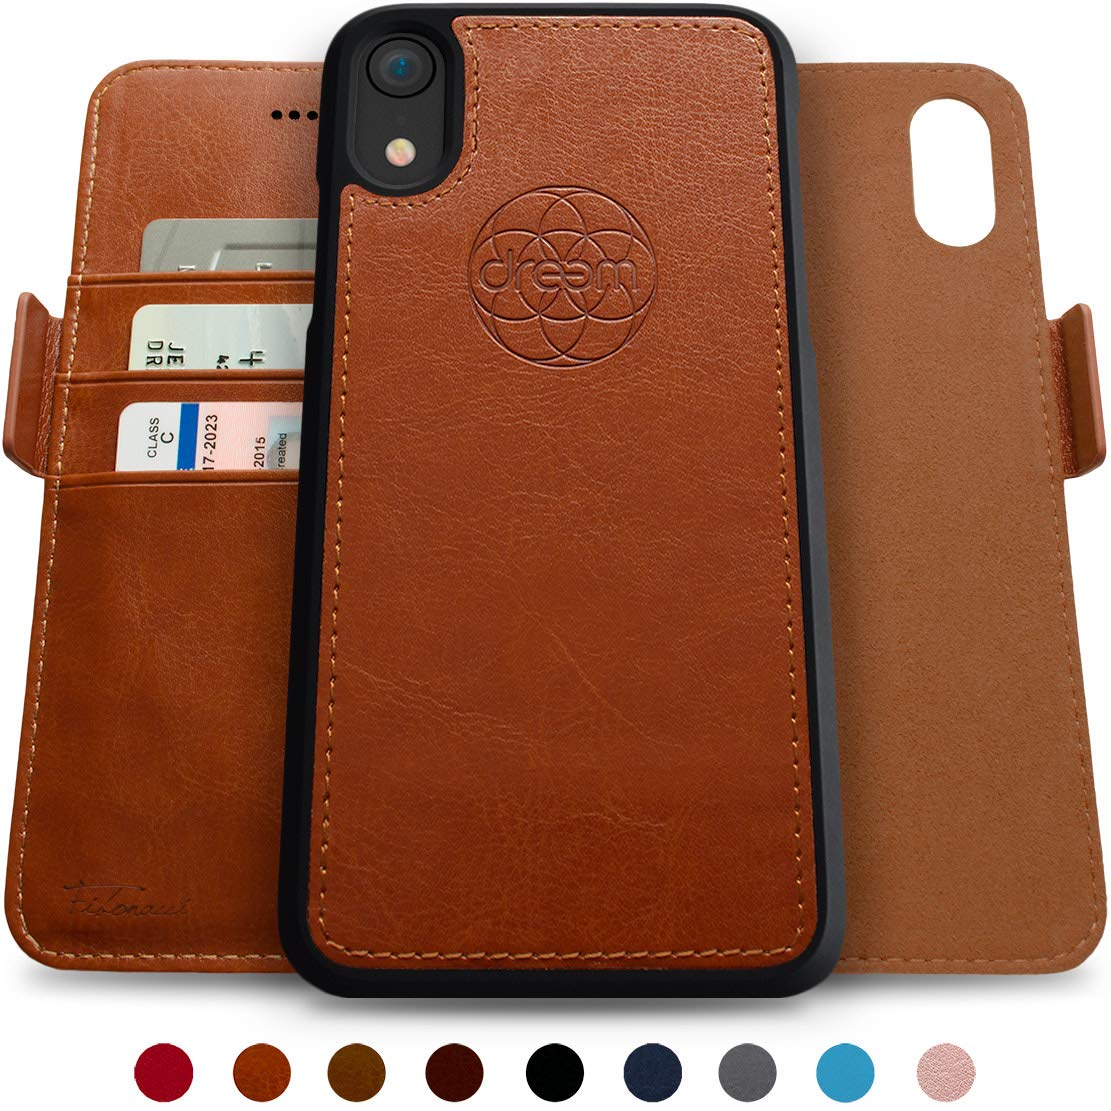 Dreem Fibonacci 2-in-1 Wallet-Case for iPhone XR Magnetic Detachable Shock-Proof TPU Slim-Case, Wireless Charge, RFID Protection, 2-Way Stand, Luxury Vegan Leather, Gift-Box - Caramel by Dreem